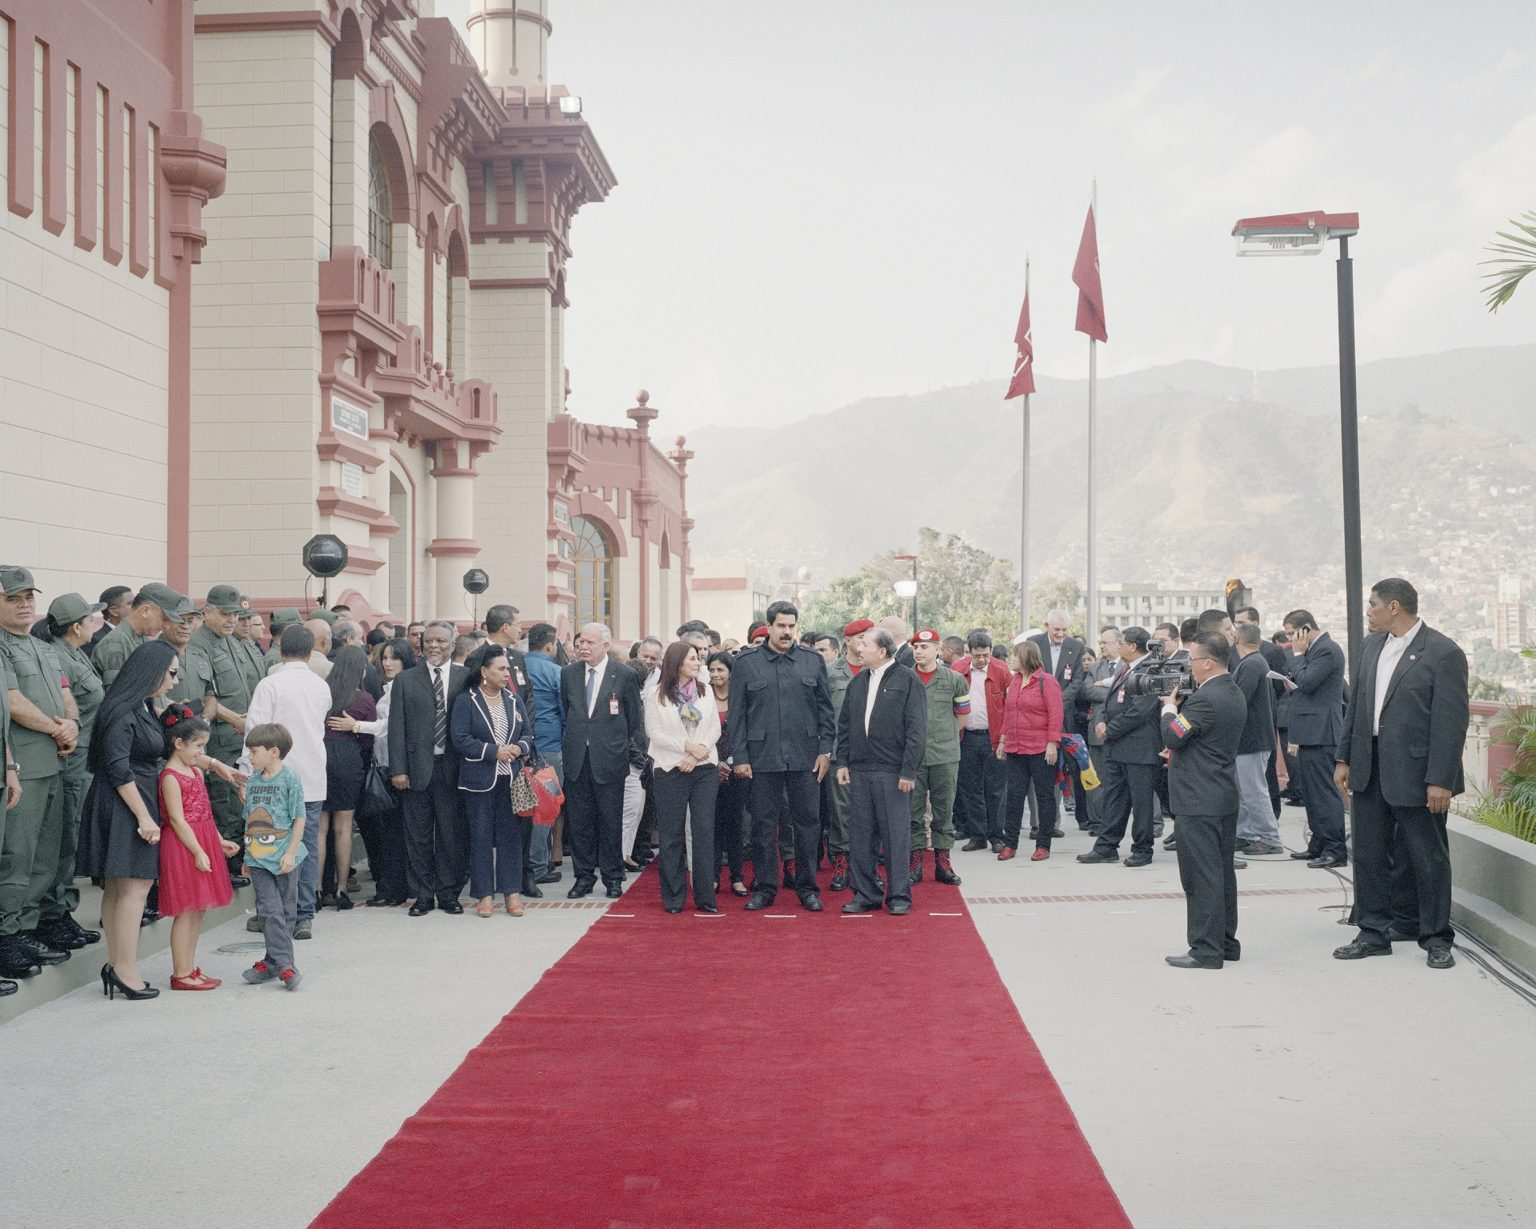 """First year aniversary of the death of Chavez. President Maduro partecipating to the cerimony at the Chavez mausoleum, located in the bidonville """"24 de enero""""."""